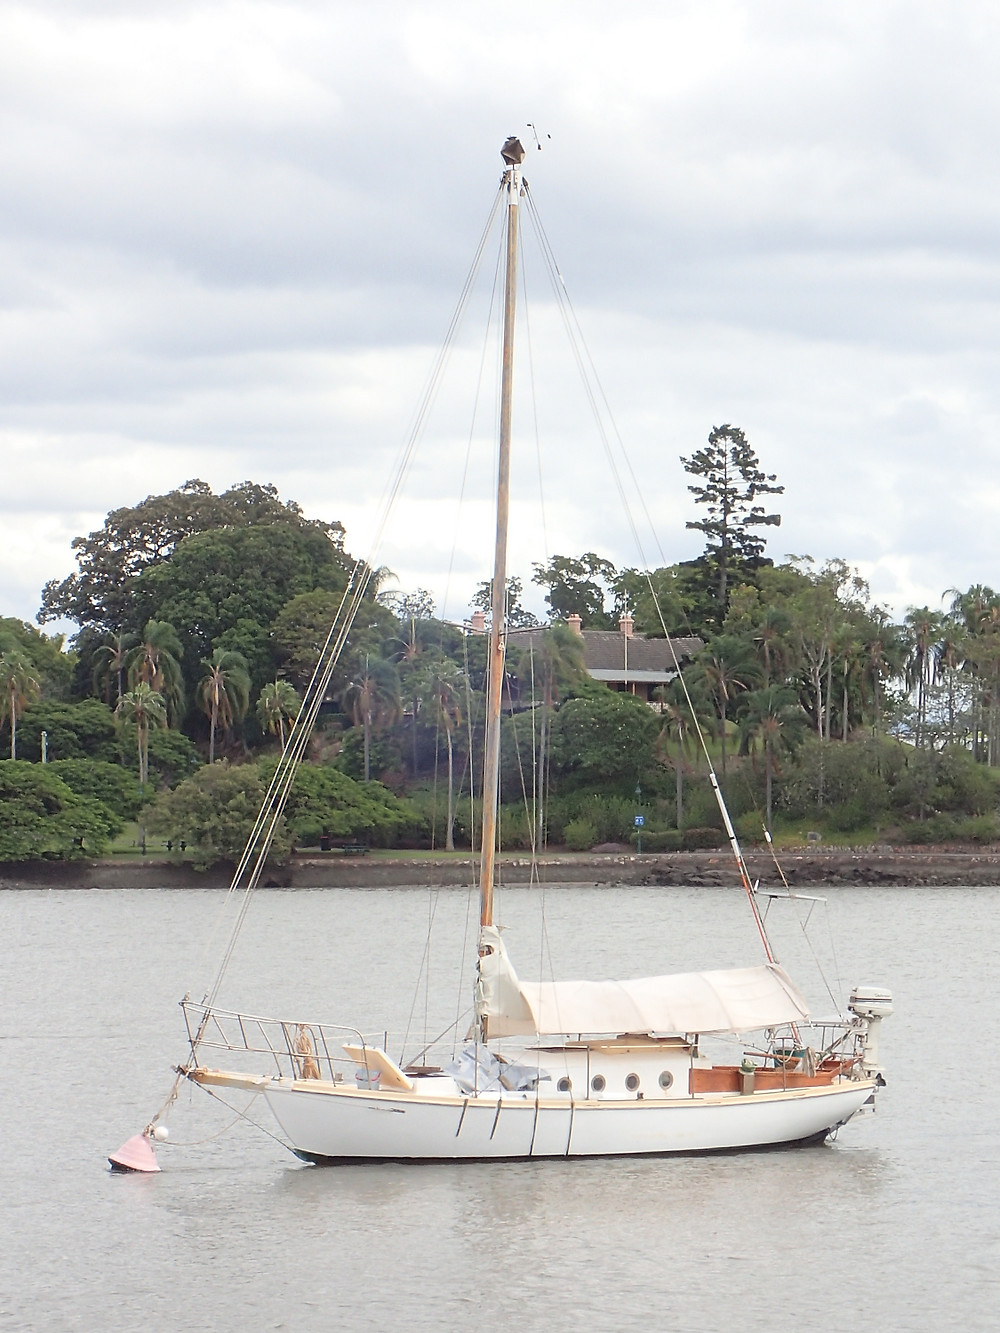 Living on a sailboat on the Brisbane River